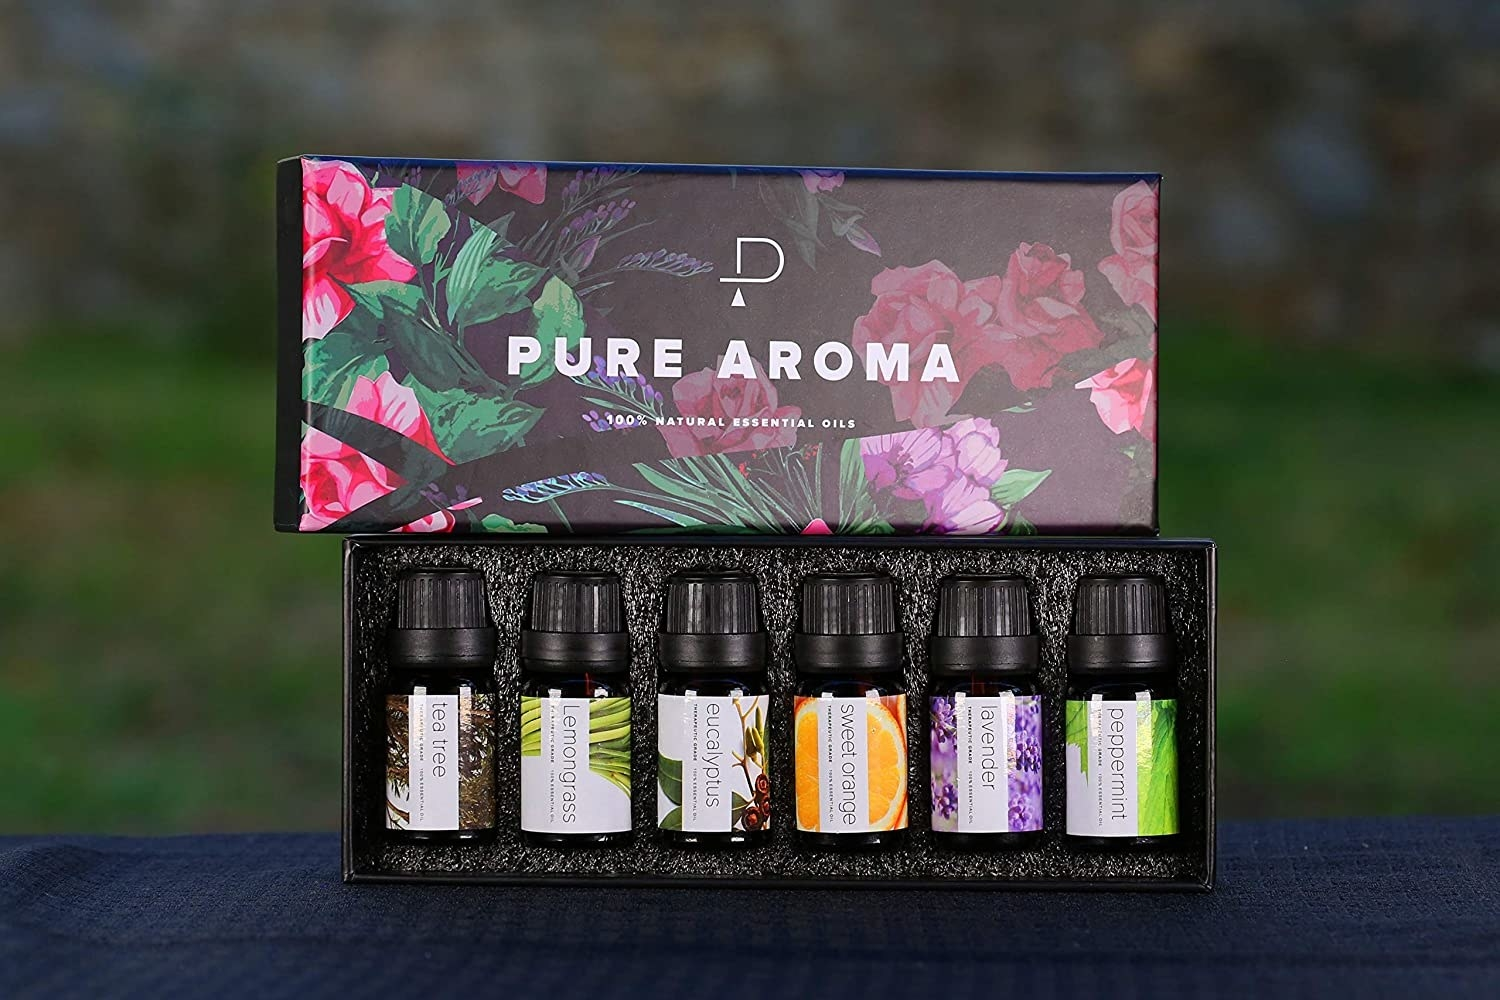 An open pack of essential oil bottles